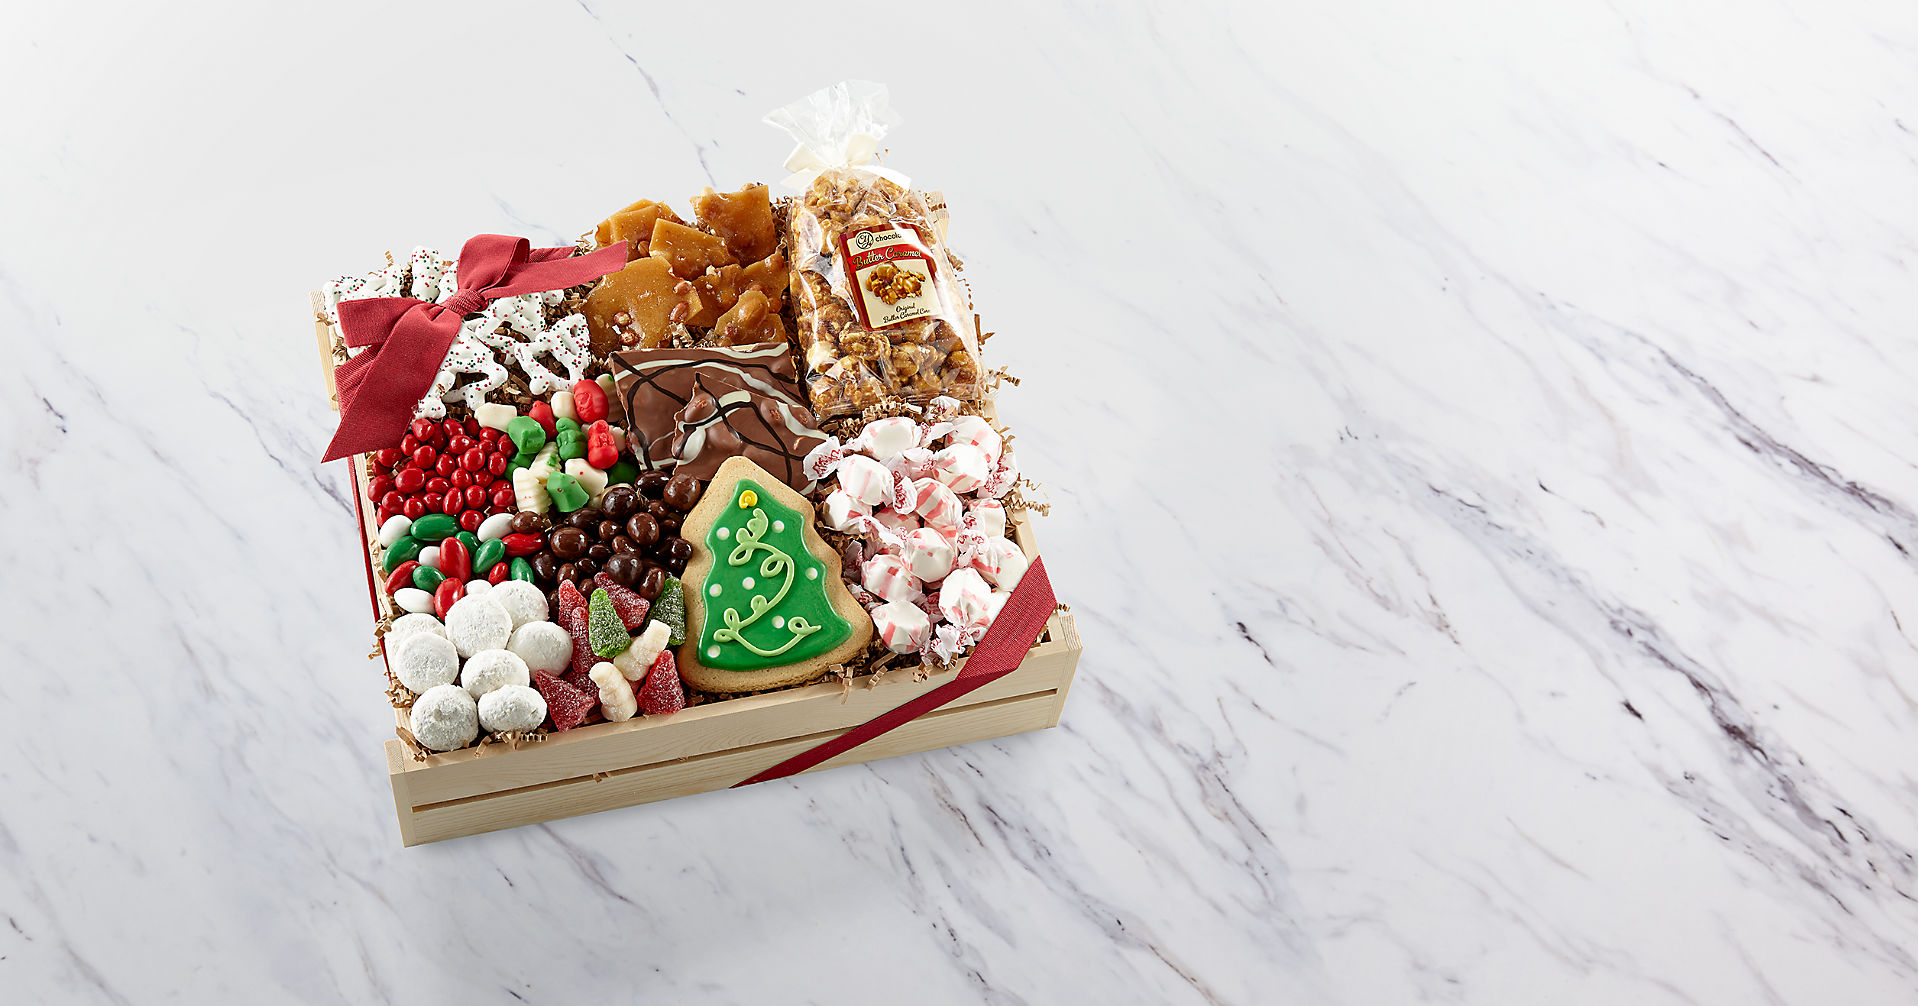 Holiday Delights Chocolate & Sweets Gourmet Gift Basket - BEST - Image 1 Of 2